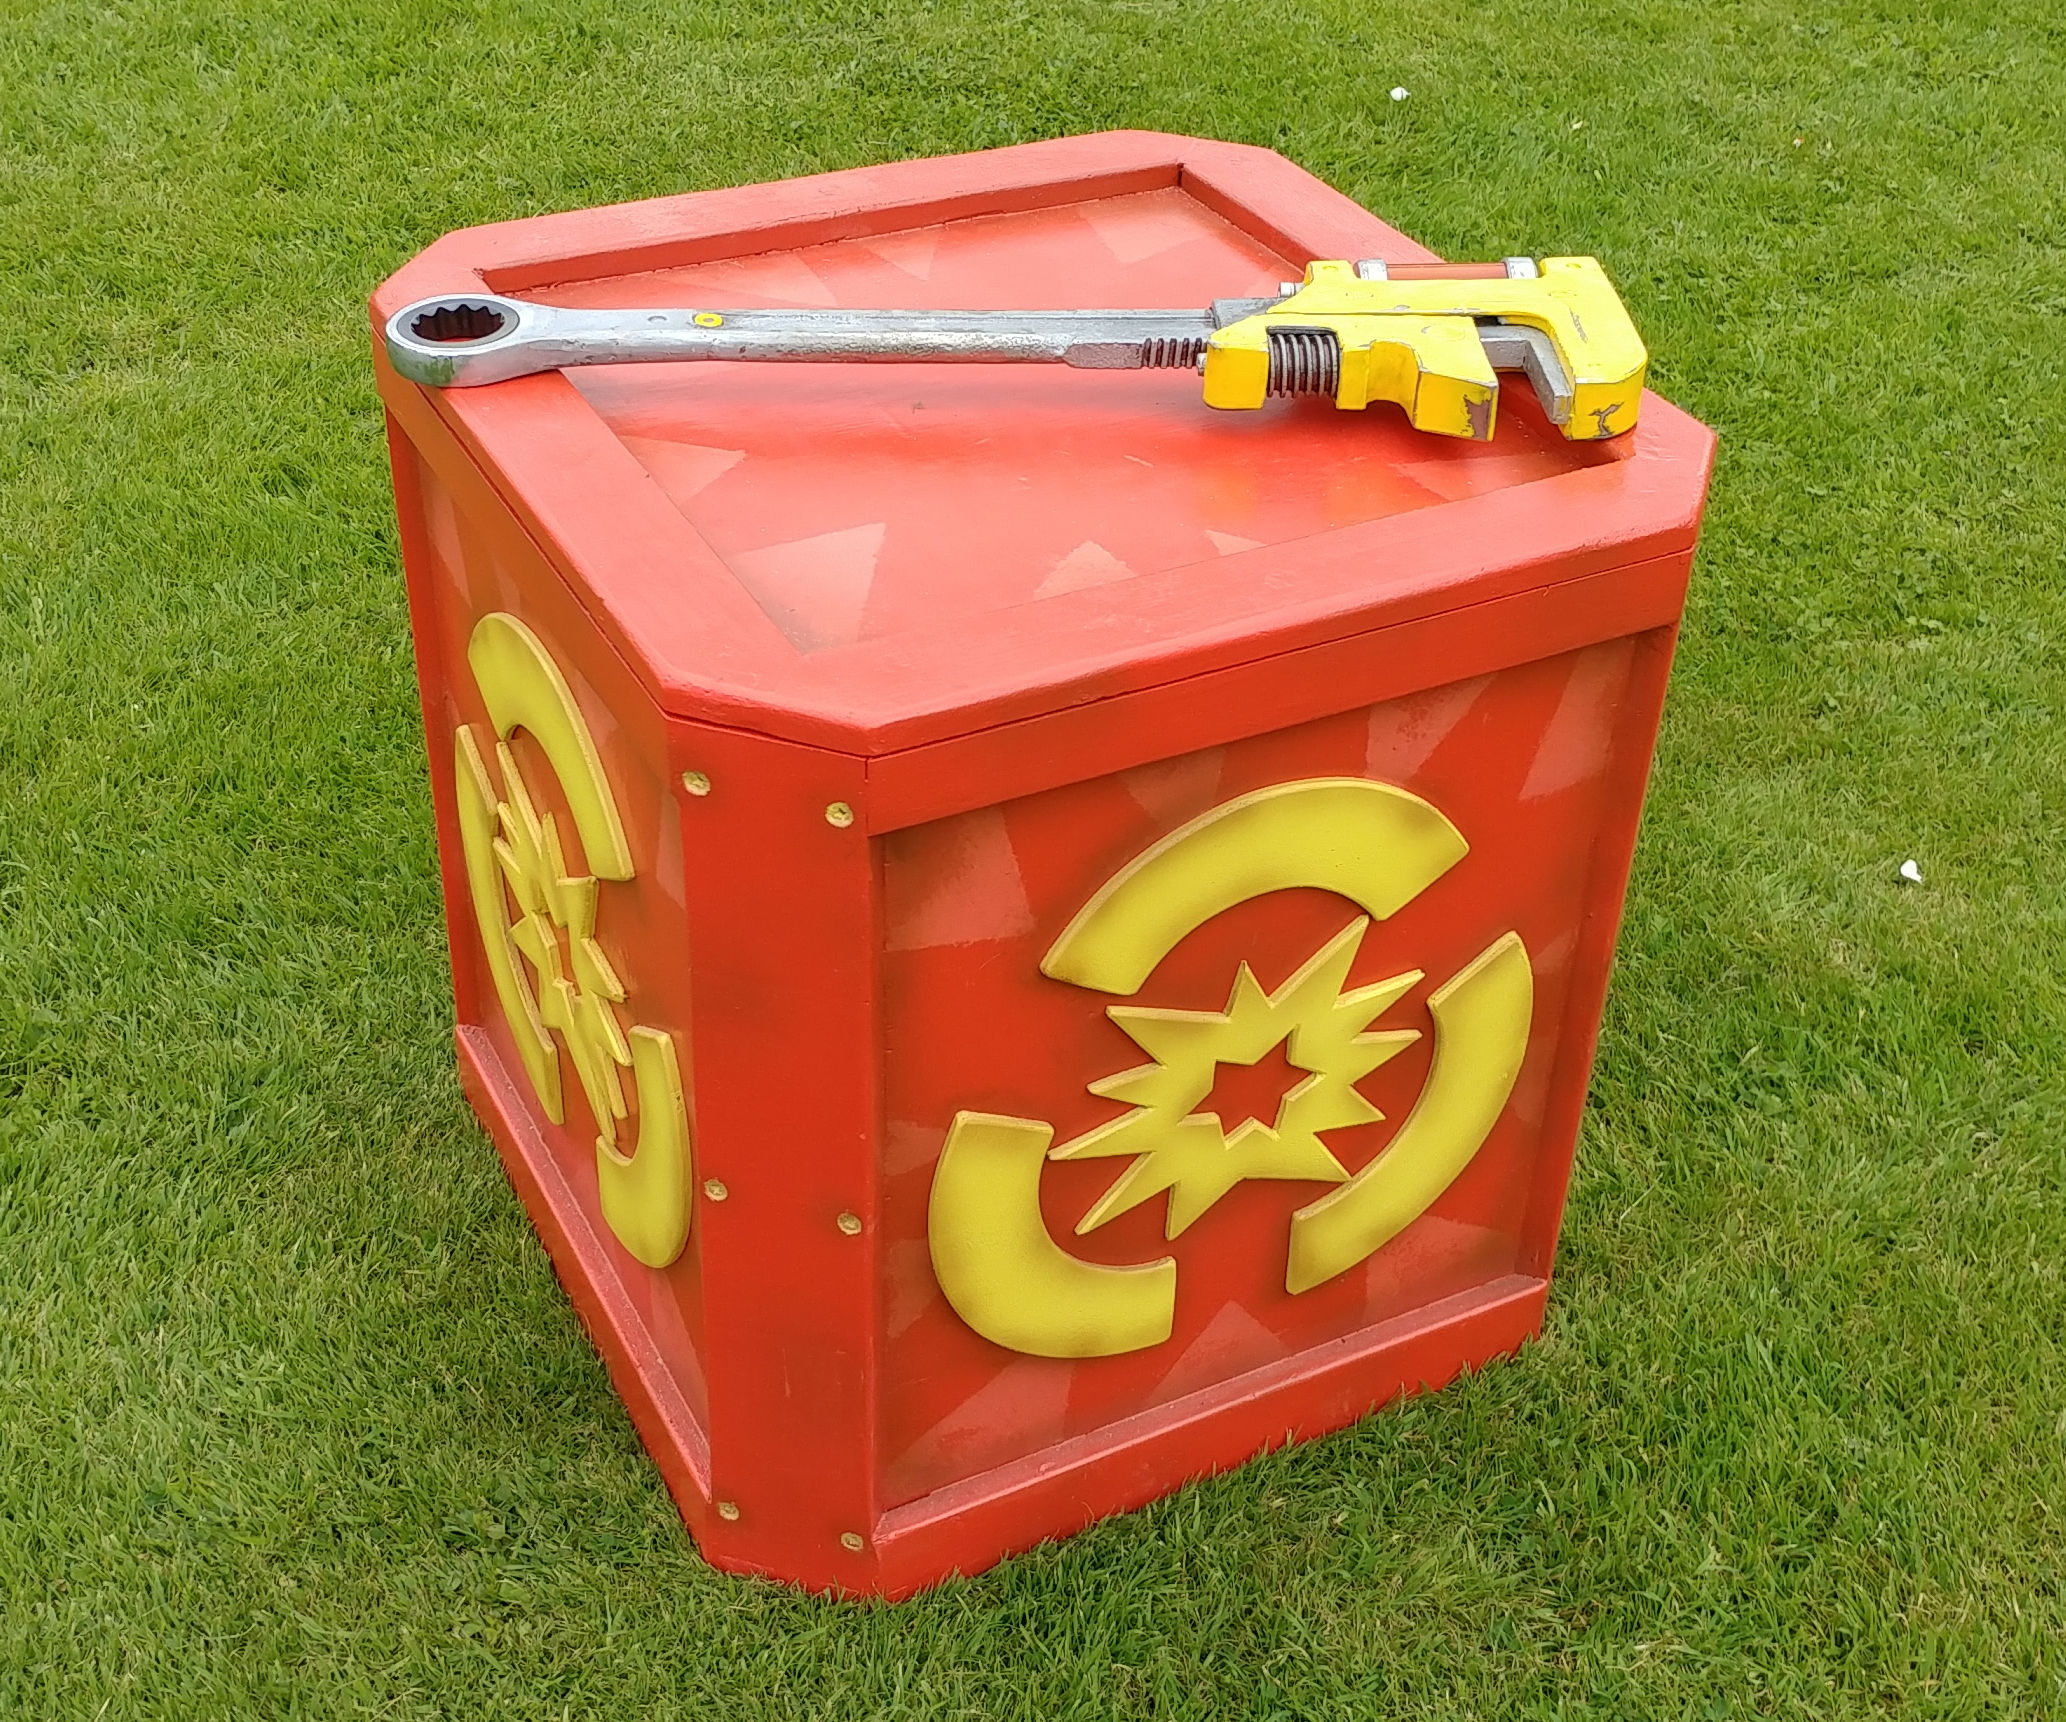 Ratchet and Clank Explosive Crate